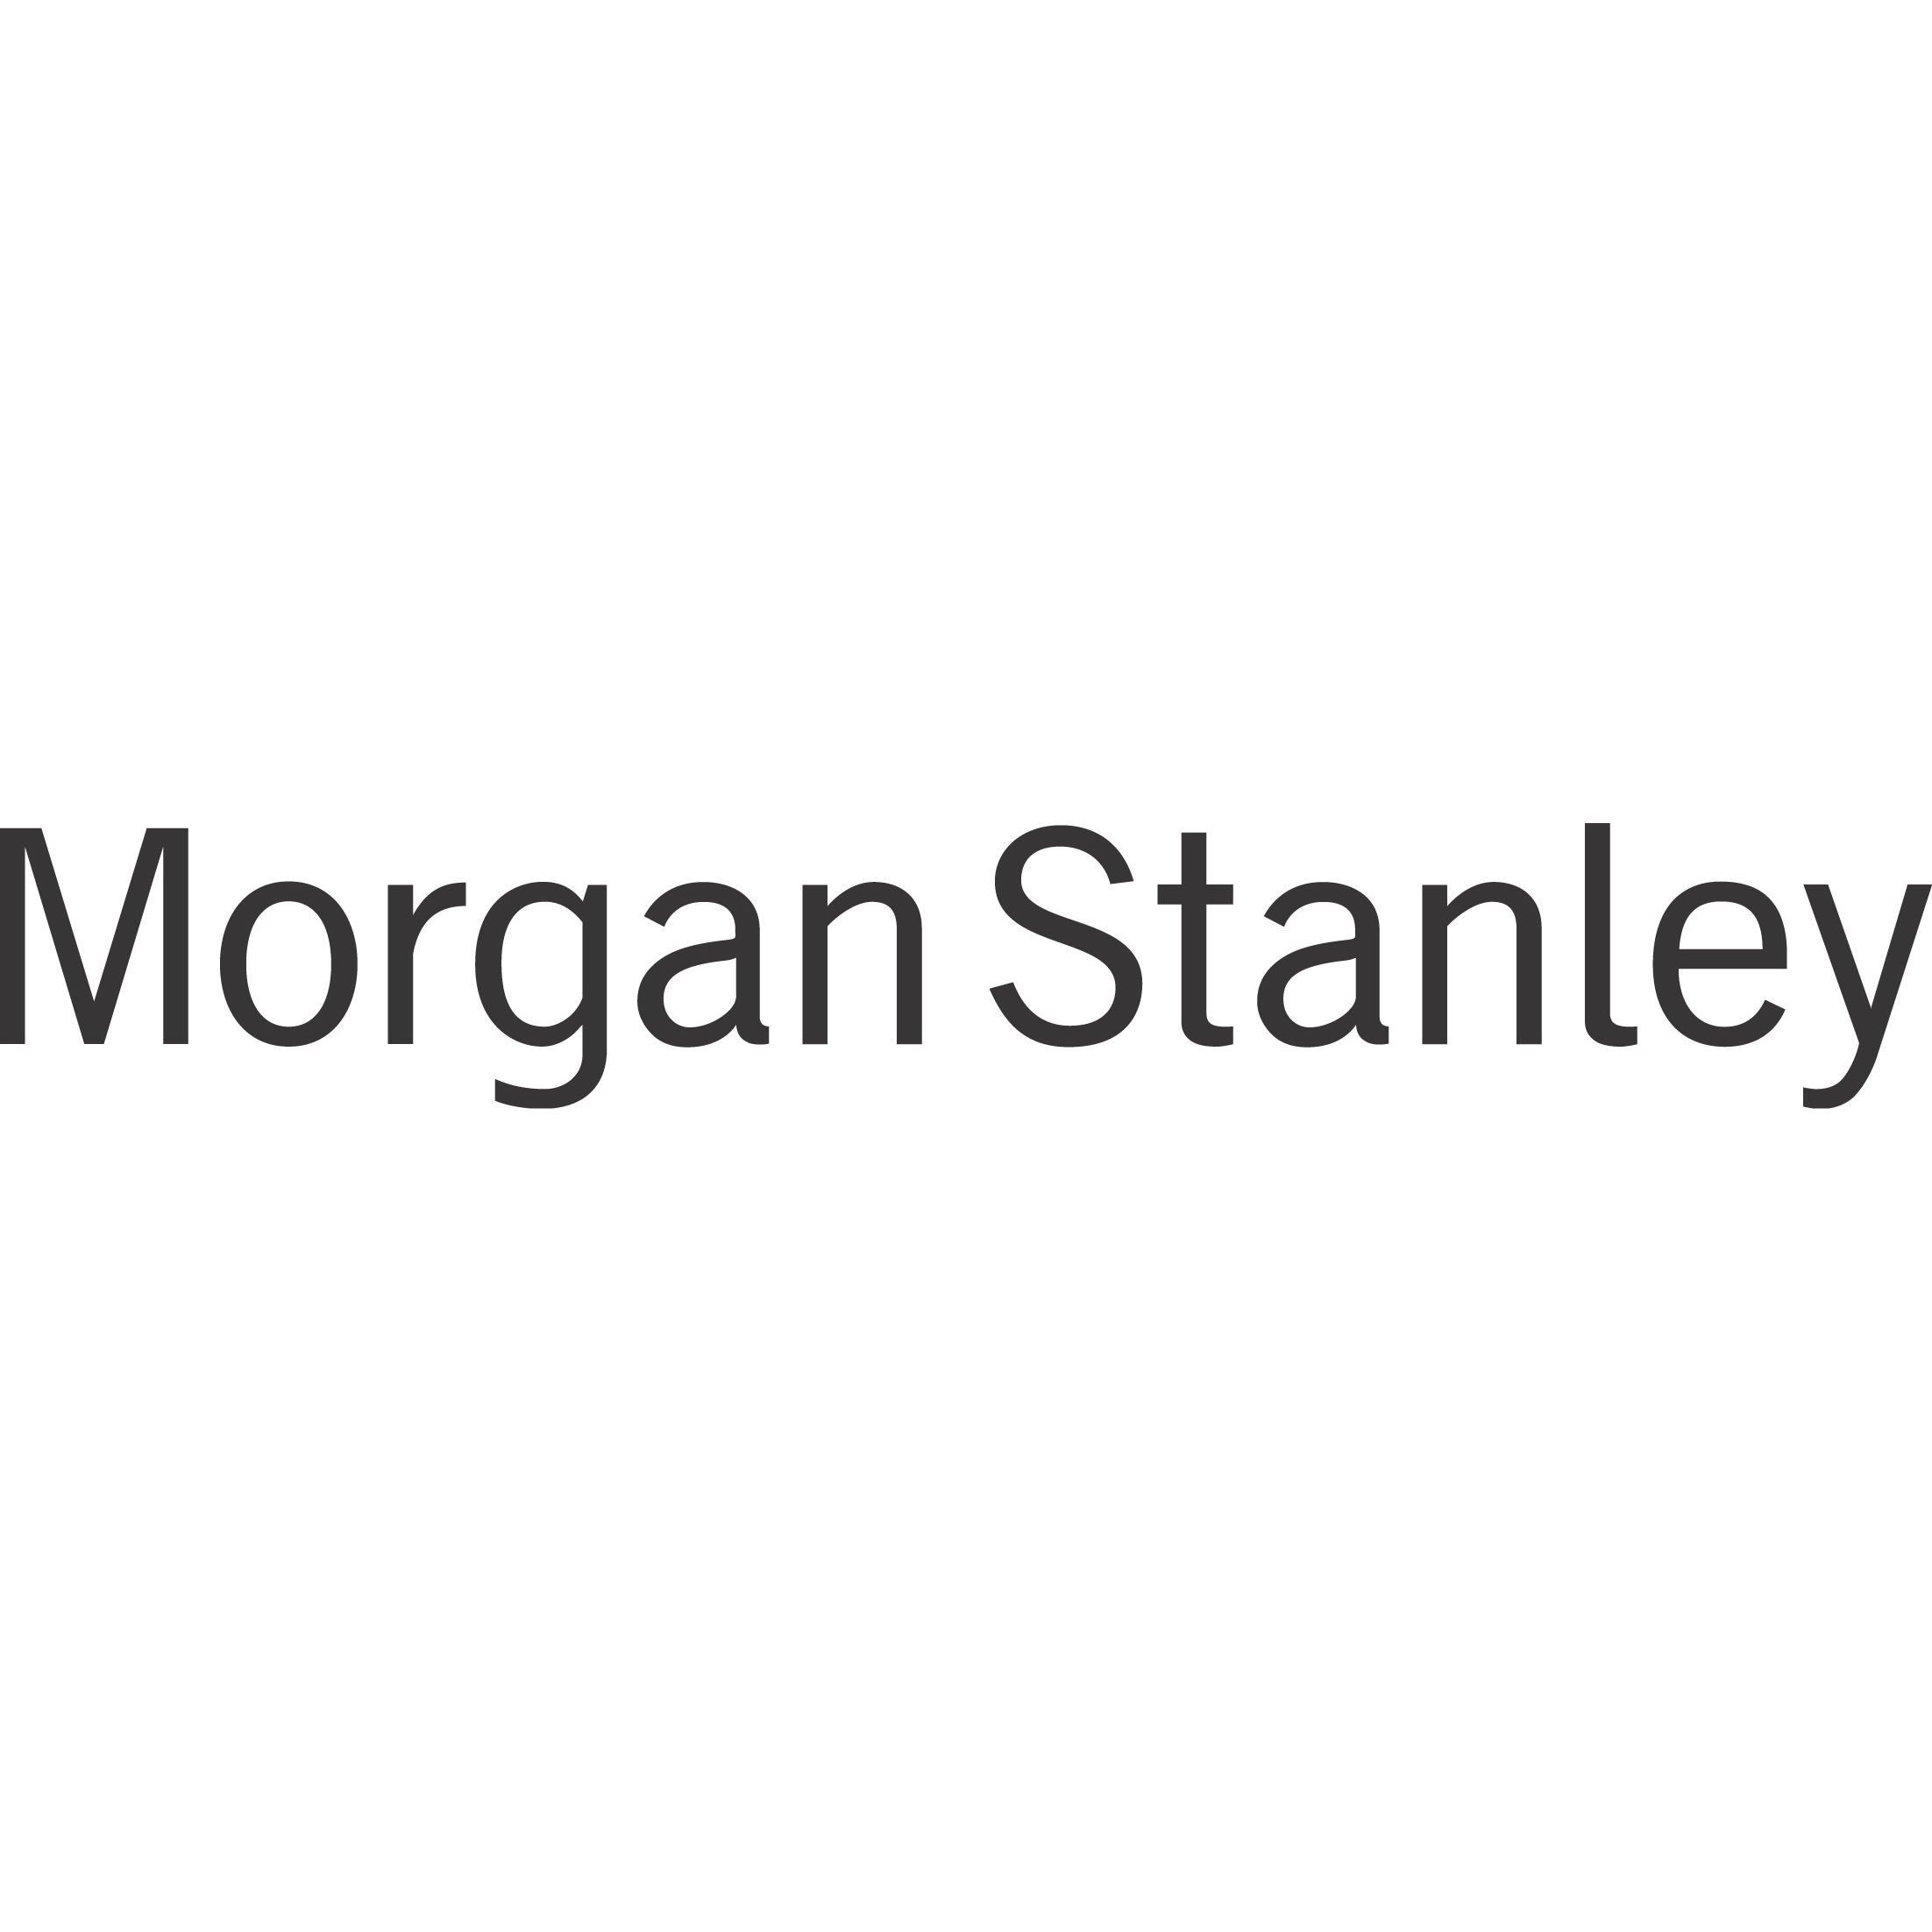 Chad J Essington - Morgan Stanley | Financial Advisor in Chicago,Illinois